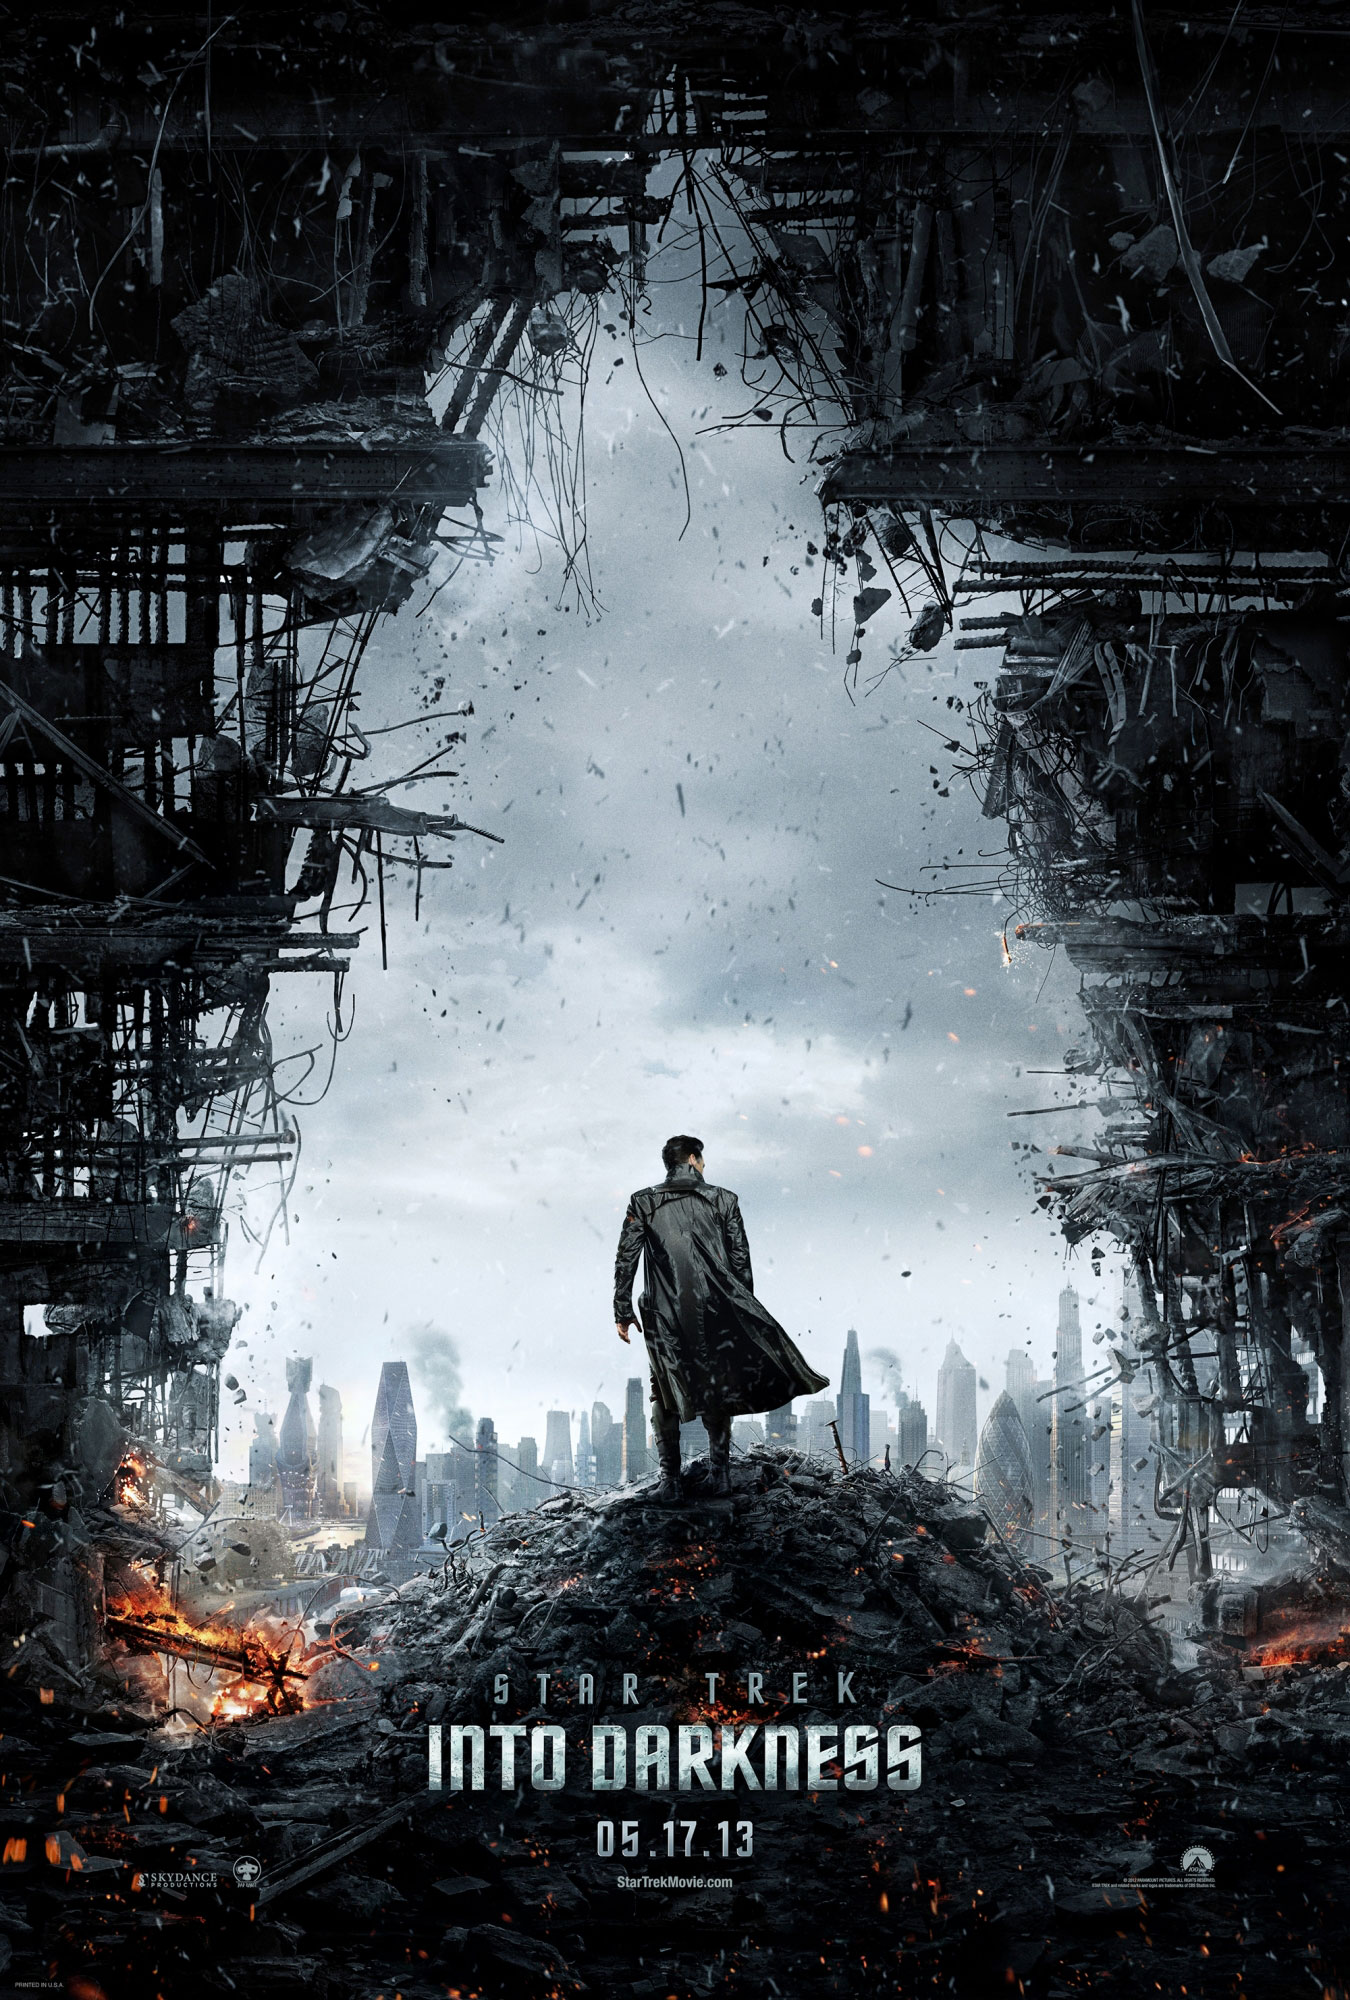 Star Trek Into Darkness Poster Promises Mass Destruction